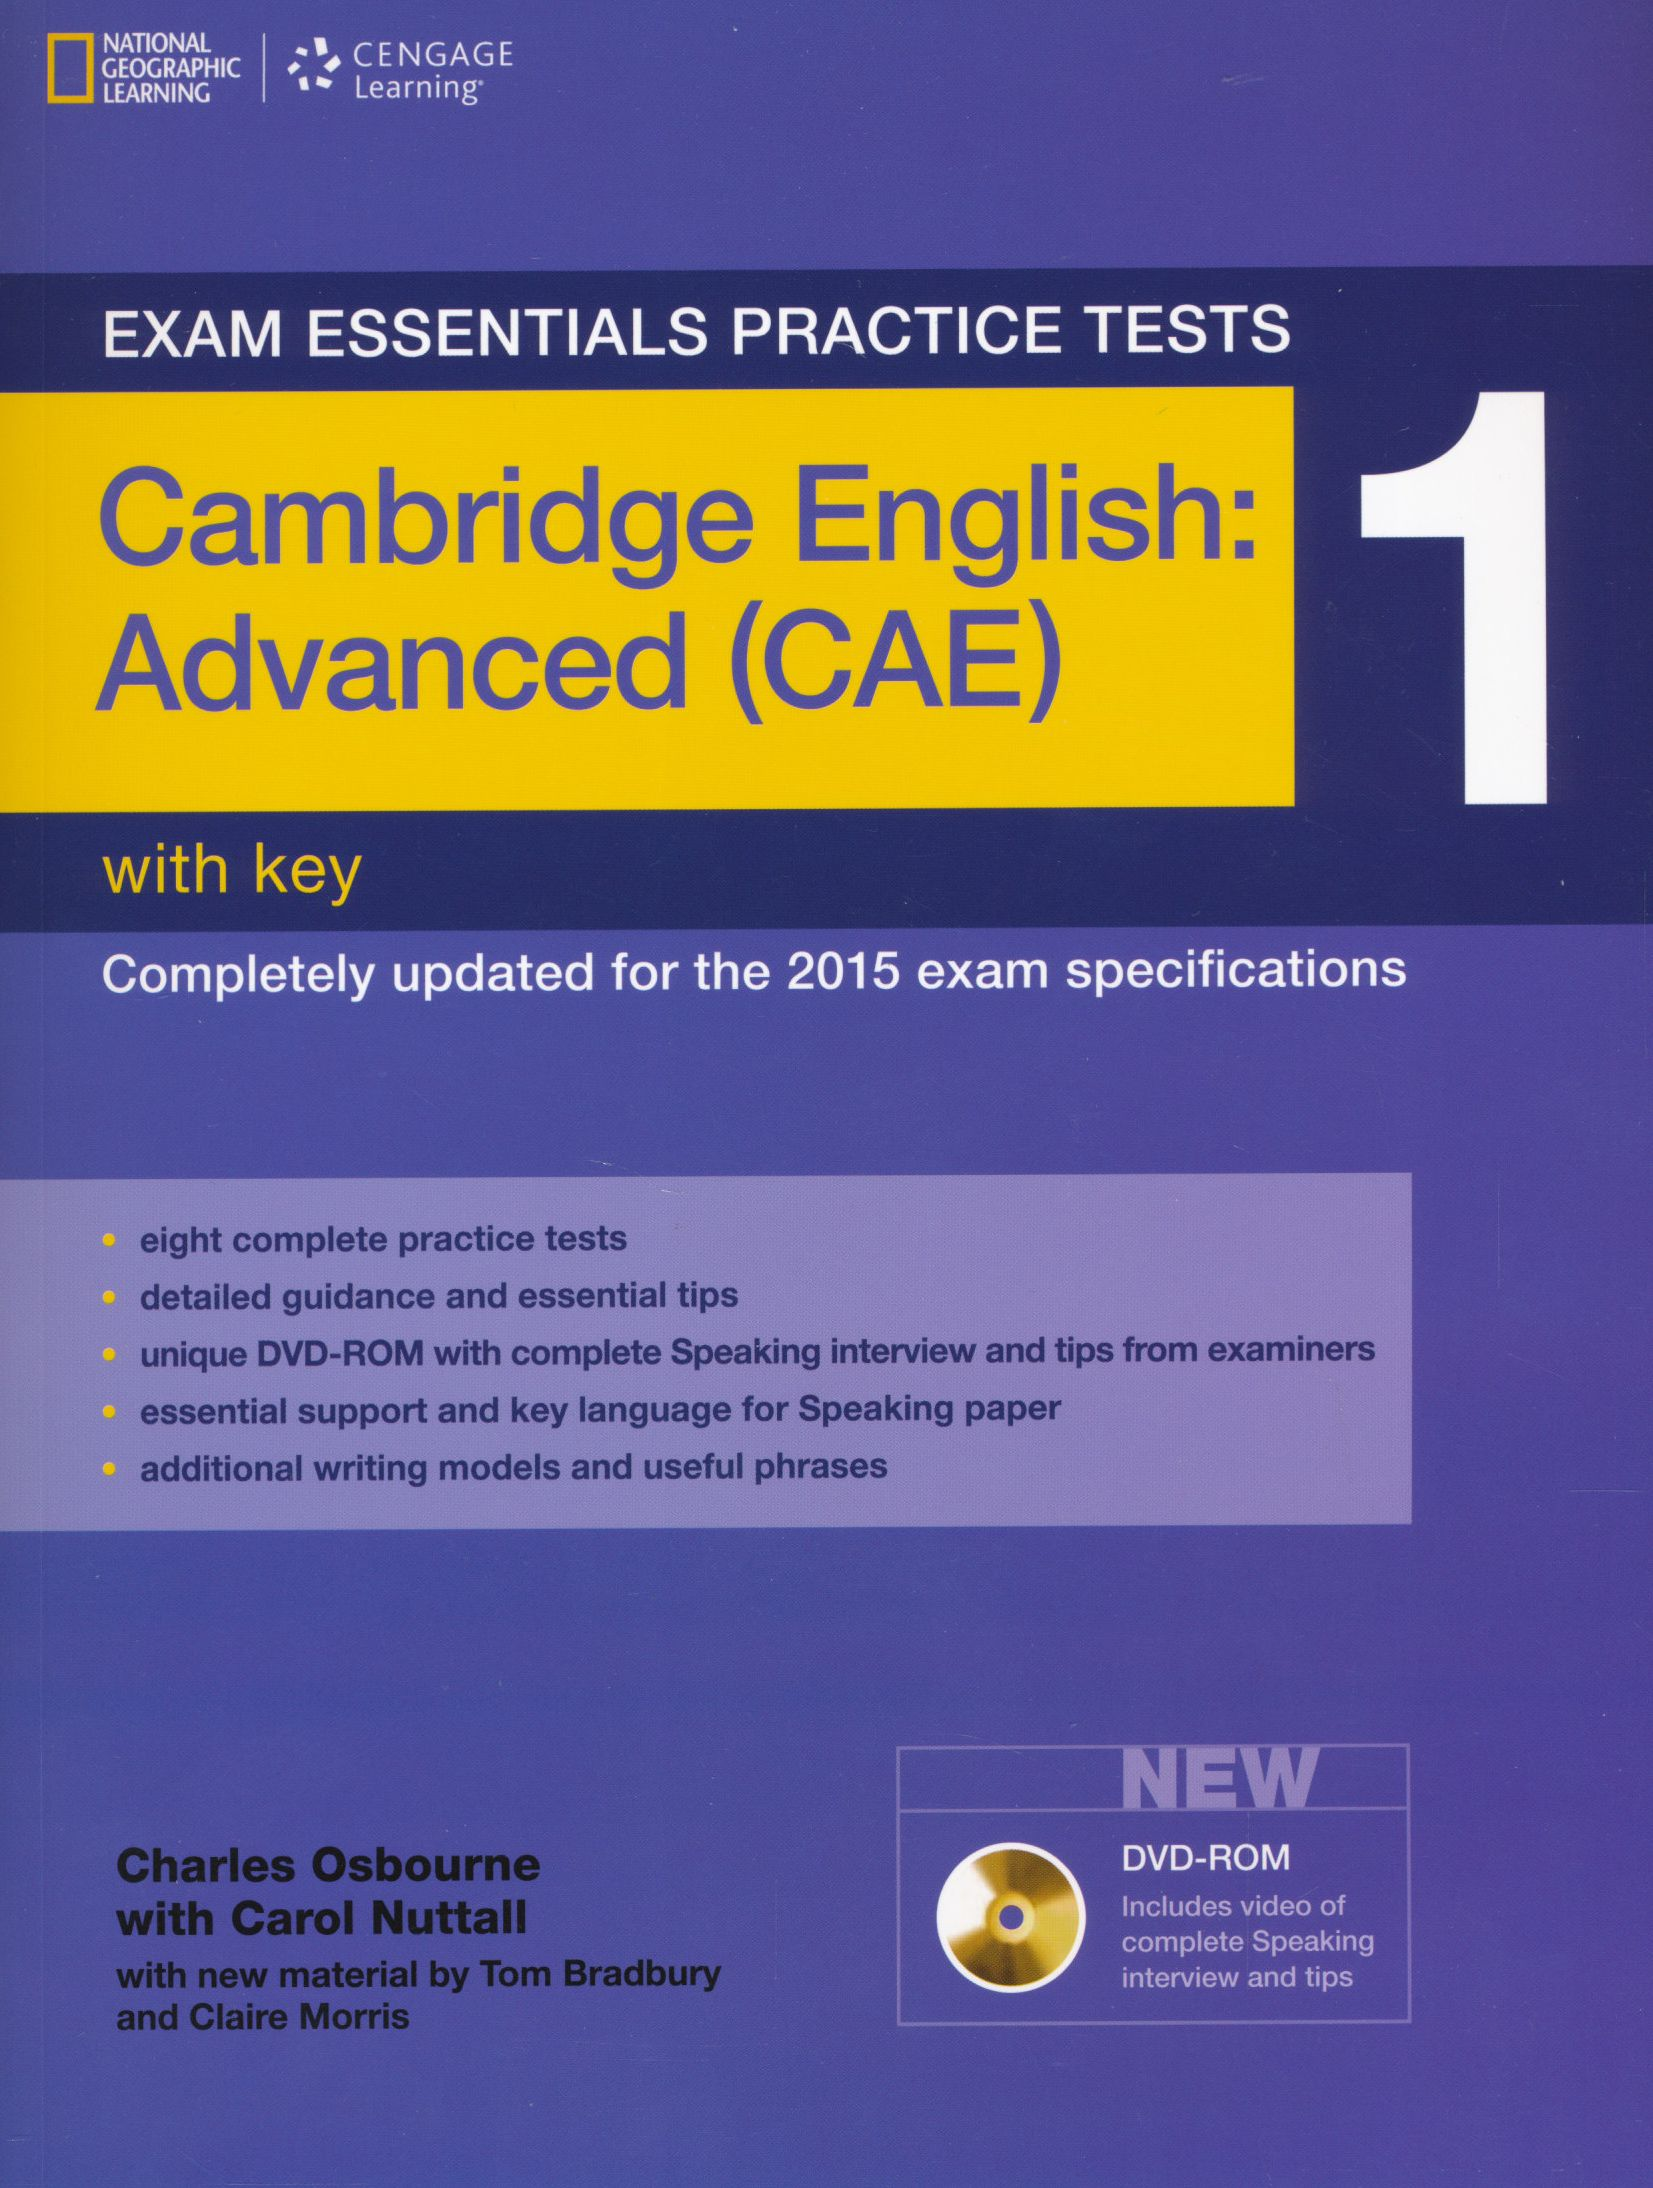 exams essentials practice test advanced